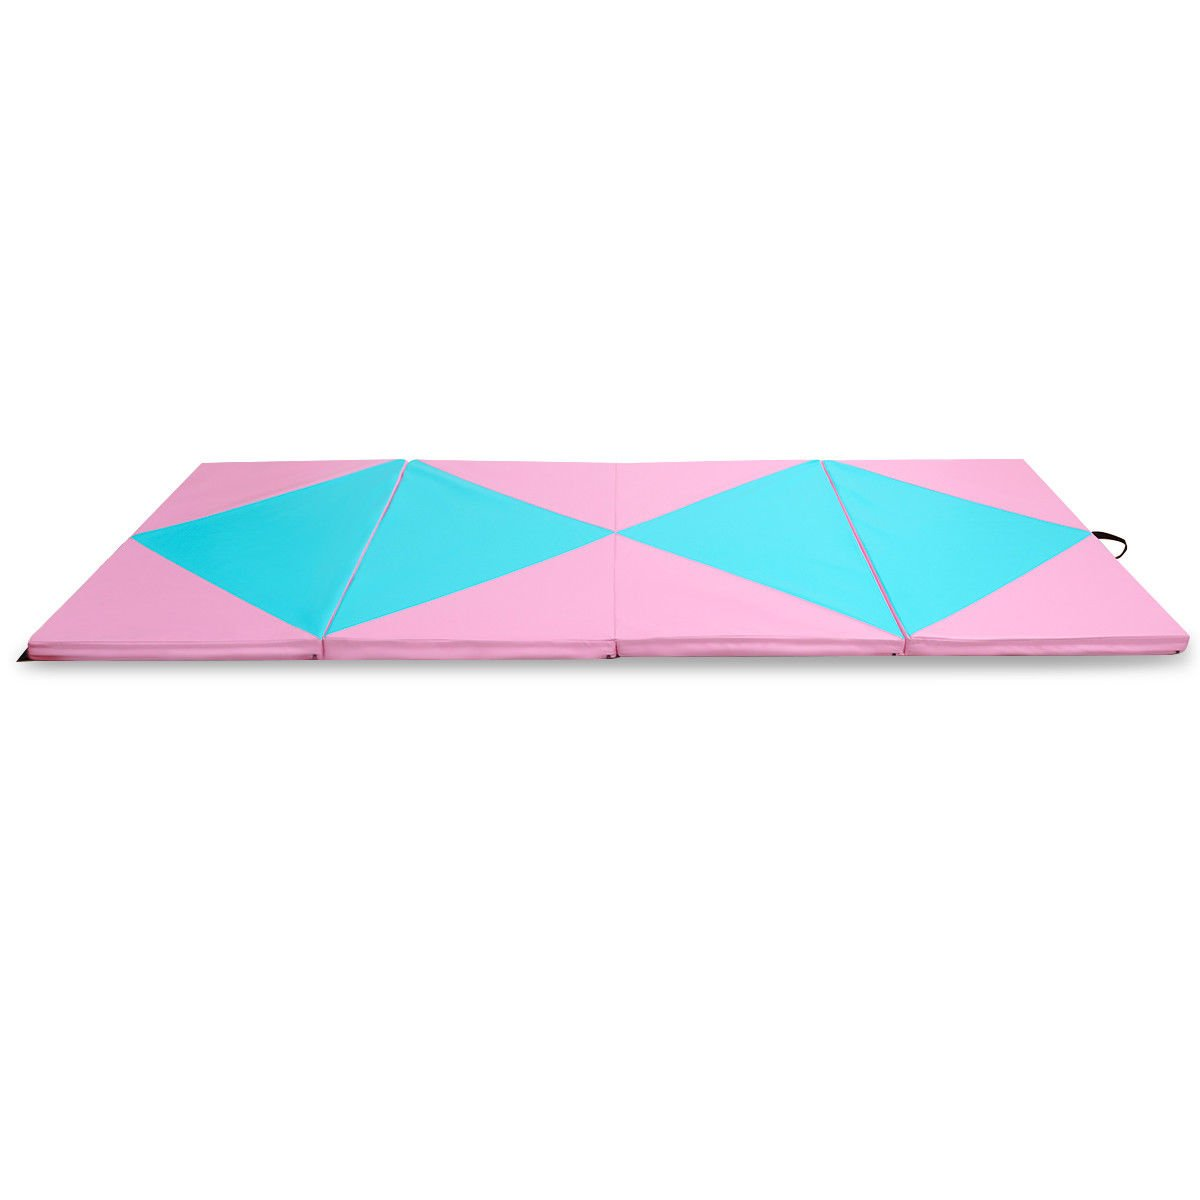 COSTWAY 4'X10'X2 Gymnastics Mat Folding Portable Exercise Aerobics Fitness Gym Exercise by COSTWAY (Image #12)